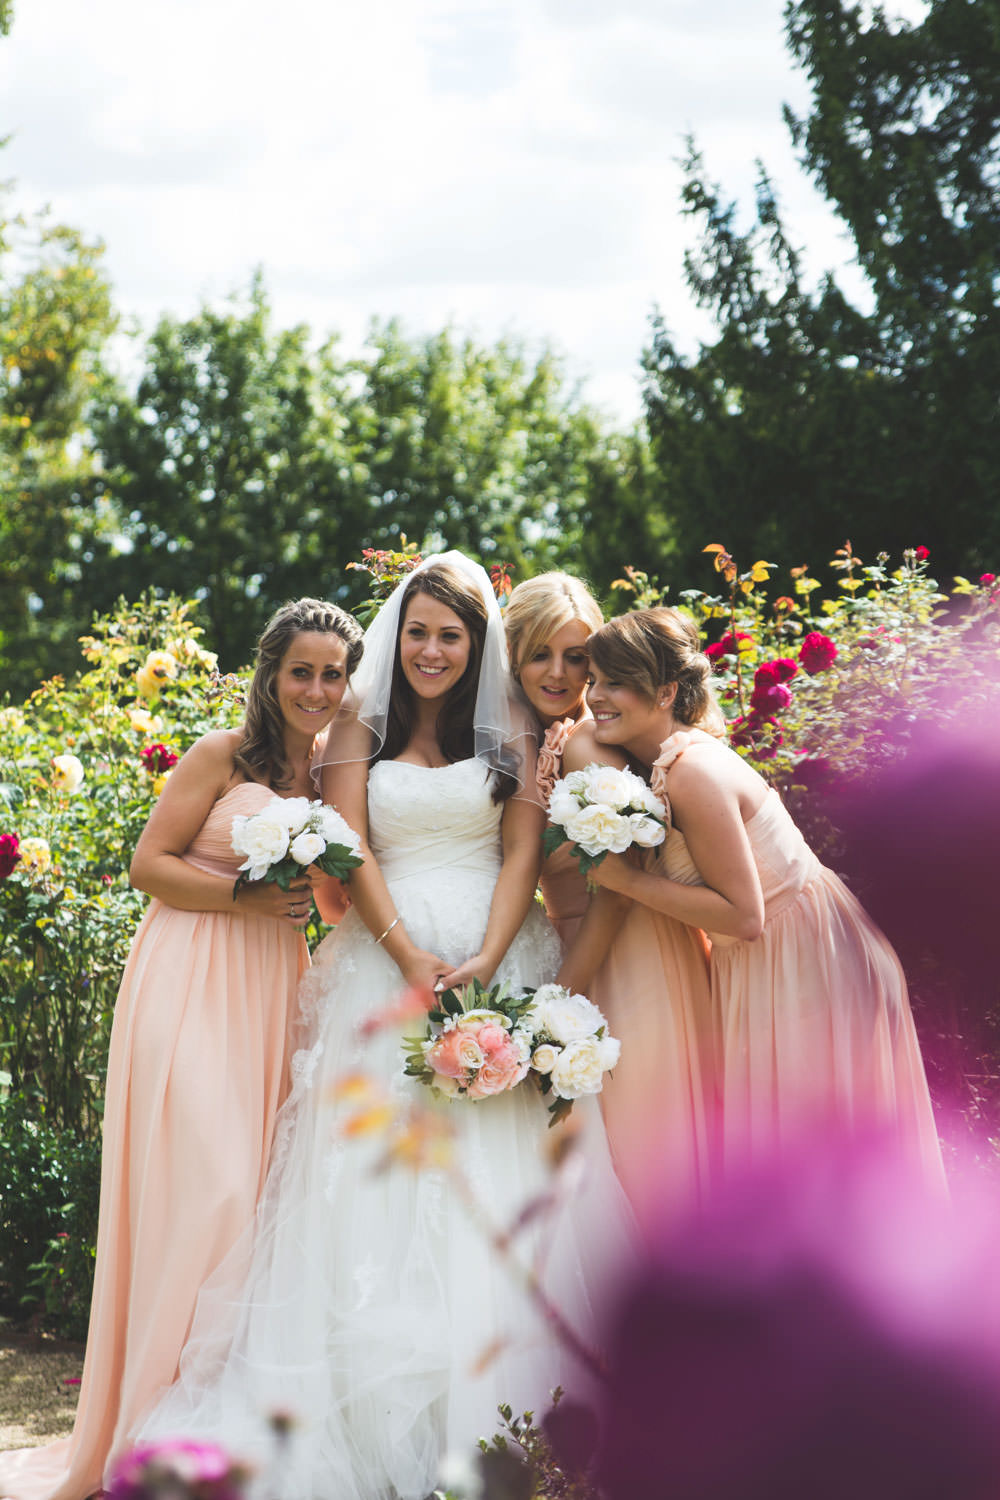 Peach Dresses For Weddings 98 Inspirational Image by uca href